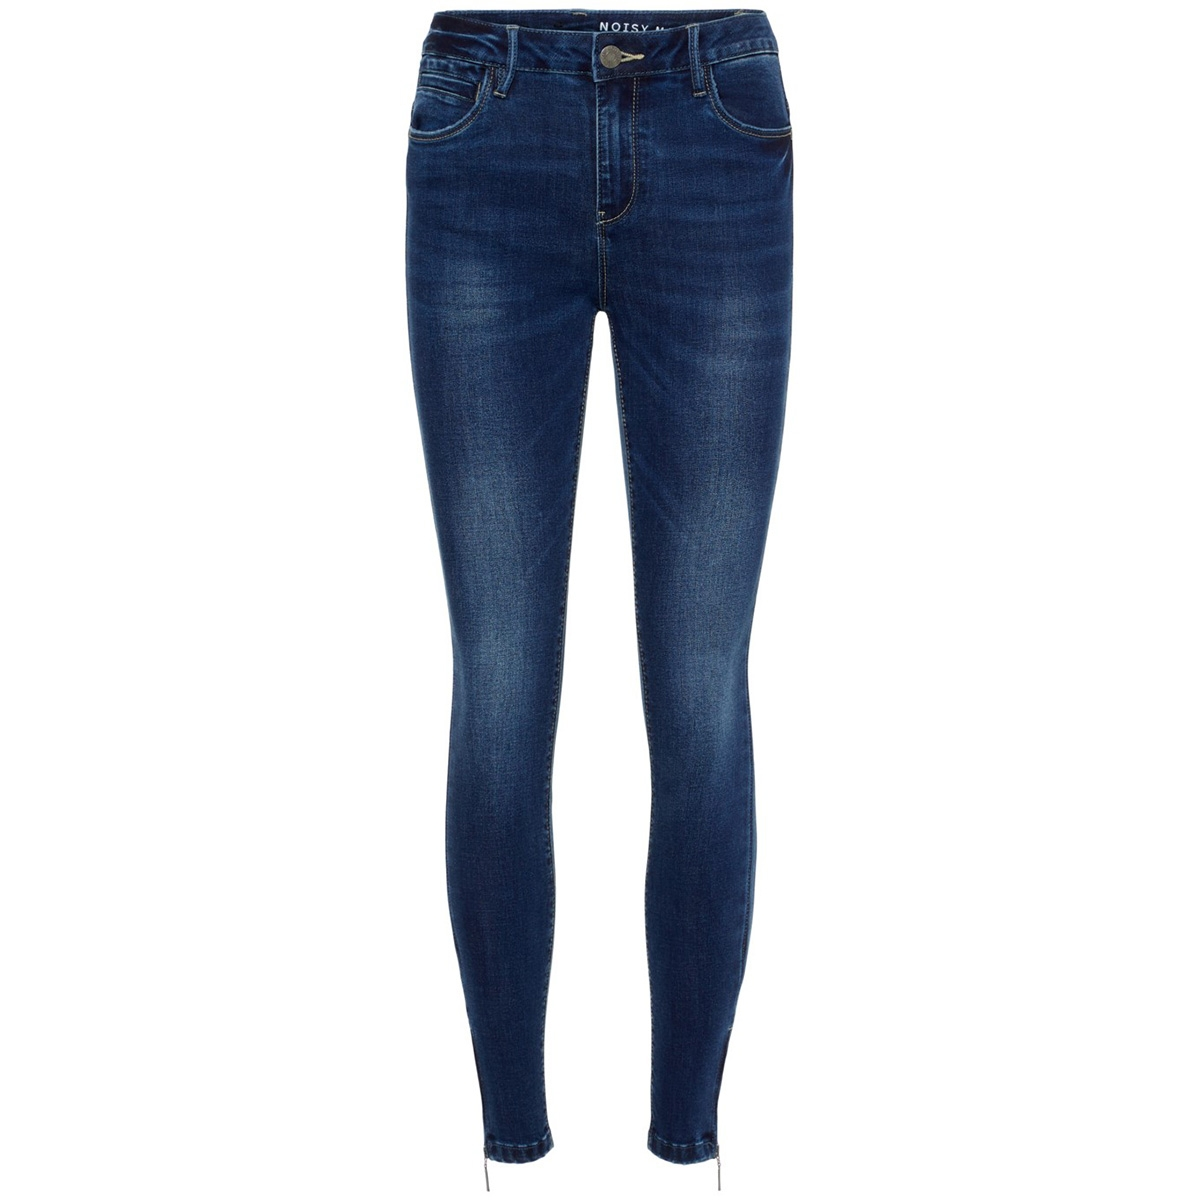 nmkimmy nw ankle zip jeans jt060db 27008917 noisy may jeans dark blue denim